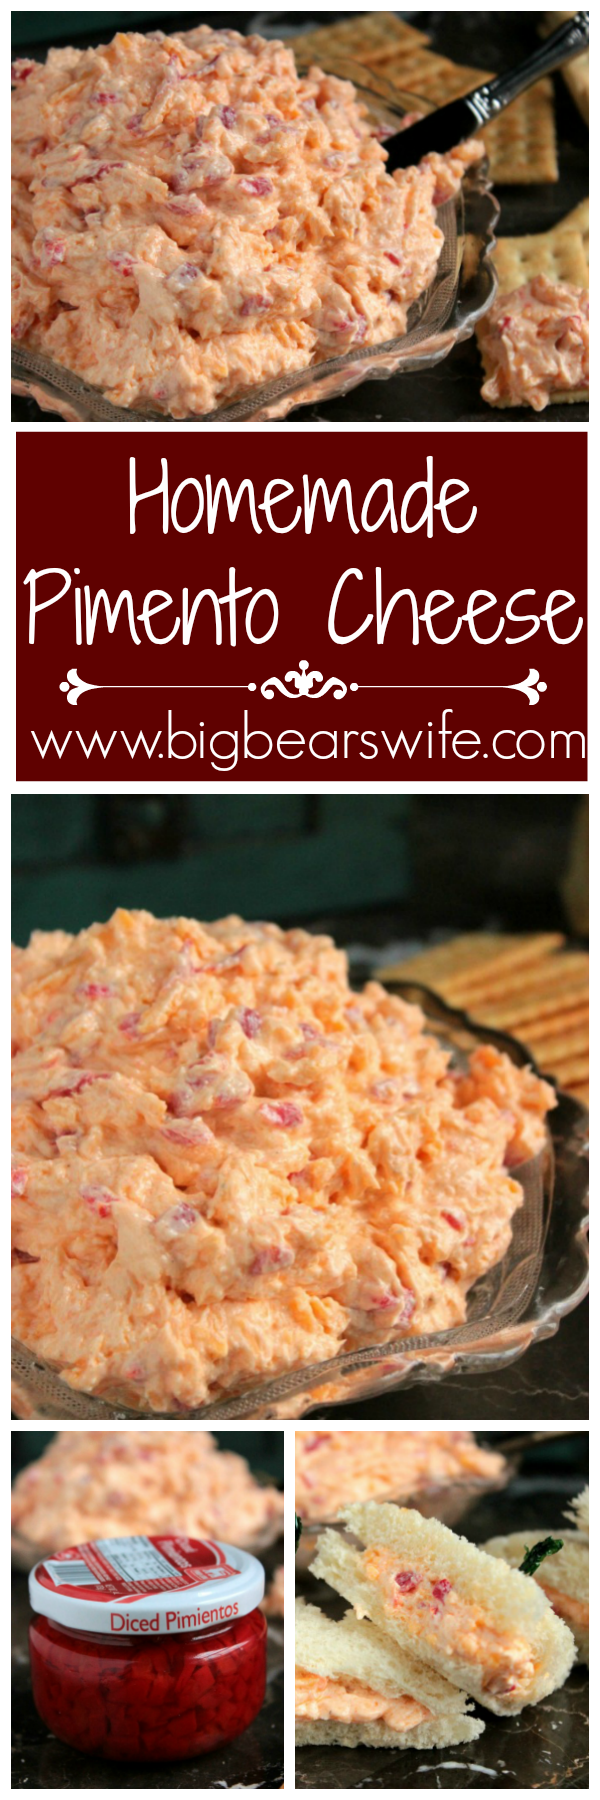 Homemade Pimento Cheese - Every good southern woman should have a homemade Pimento Cheese recipe in her back pocket! With the recipe from my grandmother's recipe box and a few tests in the kitchen, I made some of the best we've ever had!